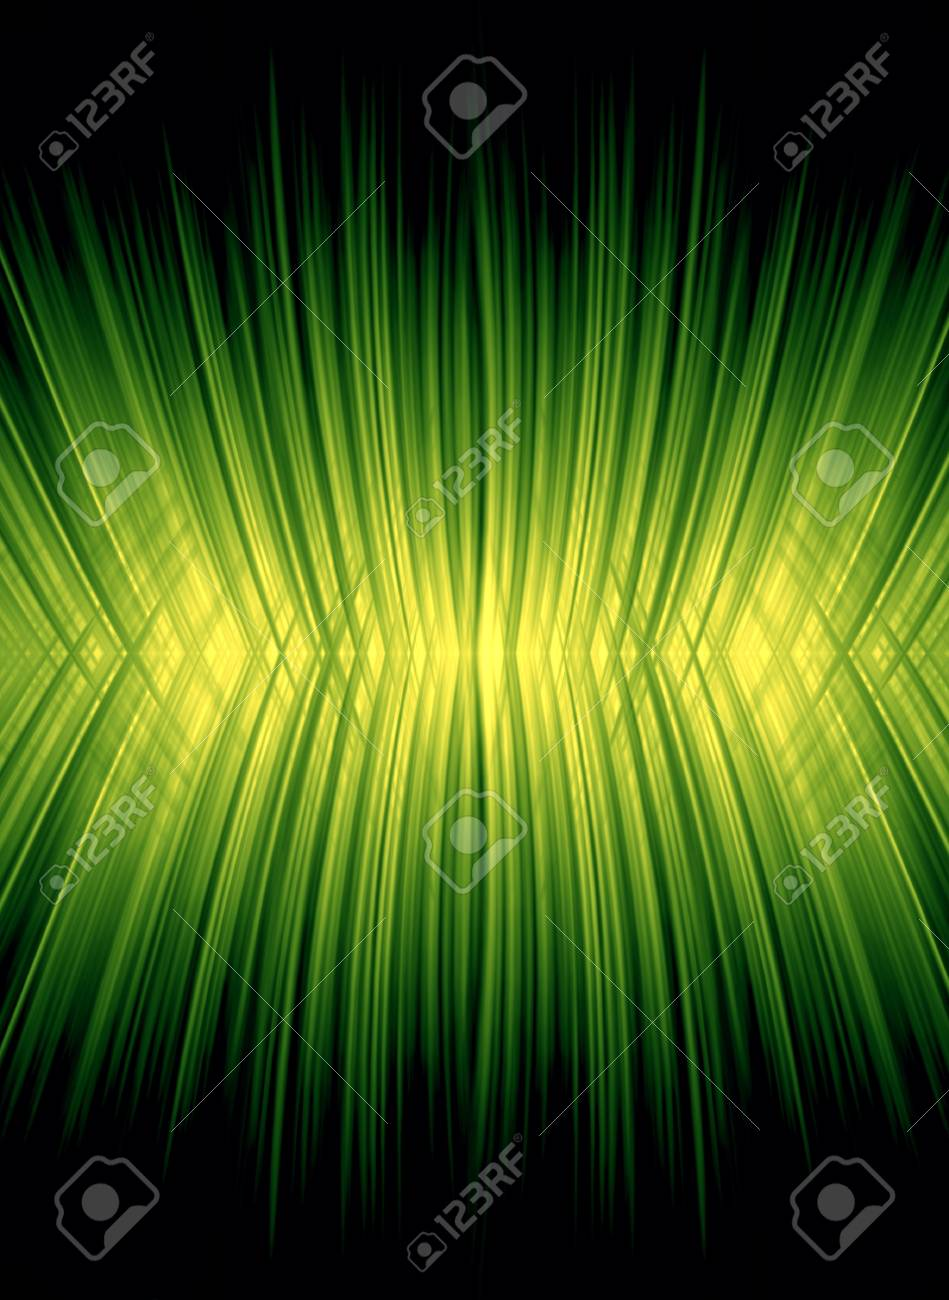 yellow   green background, rays effect Stock Photo - 12891532